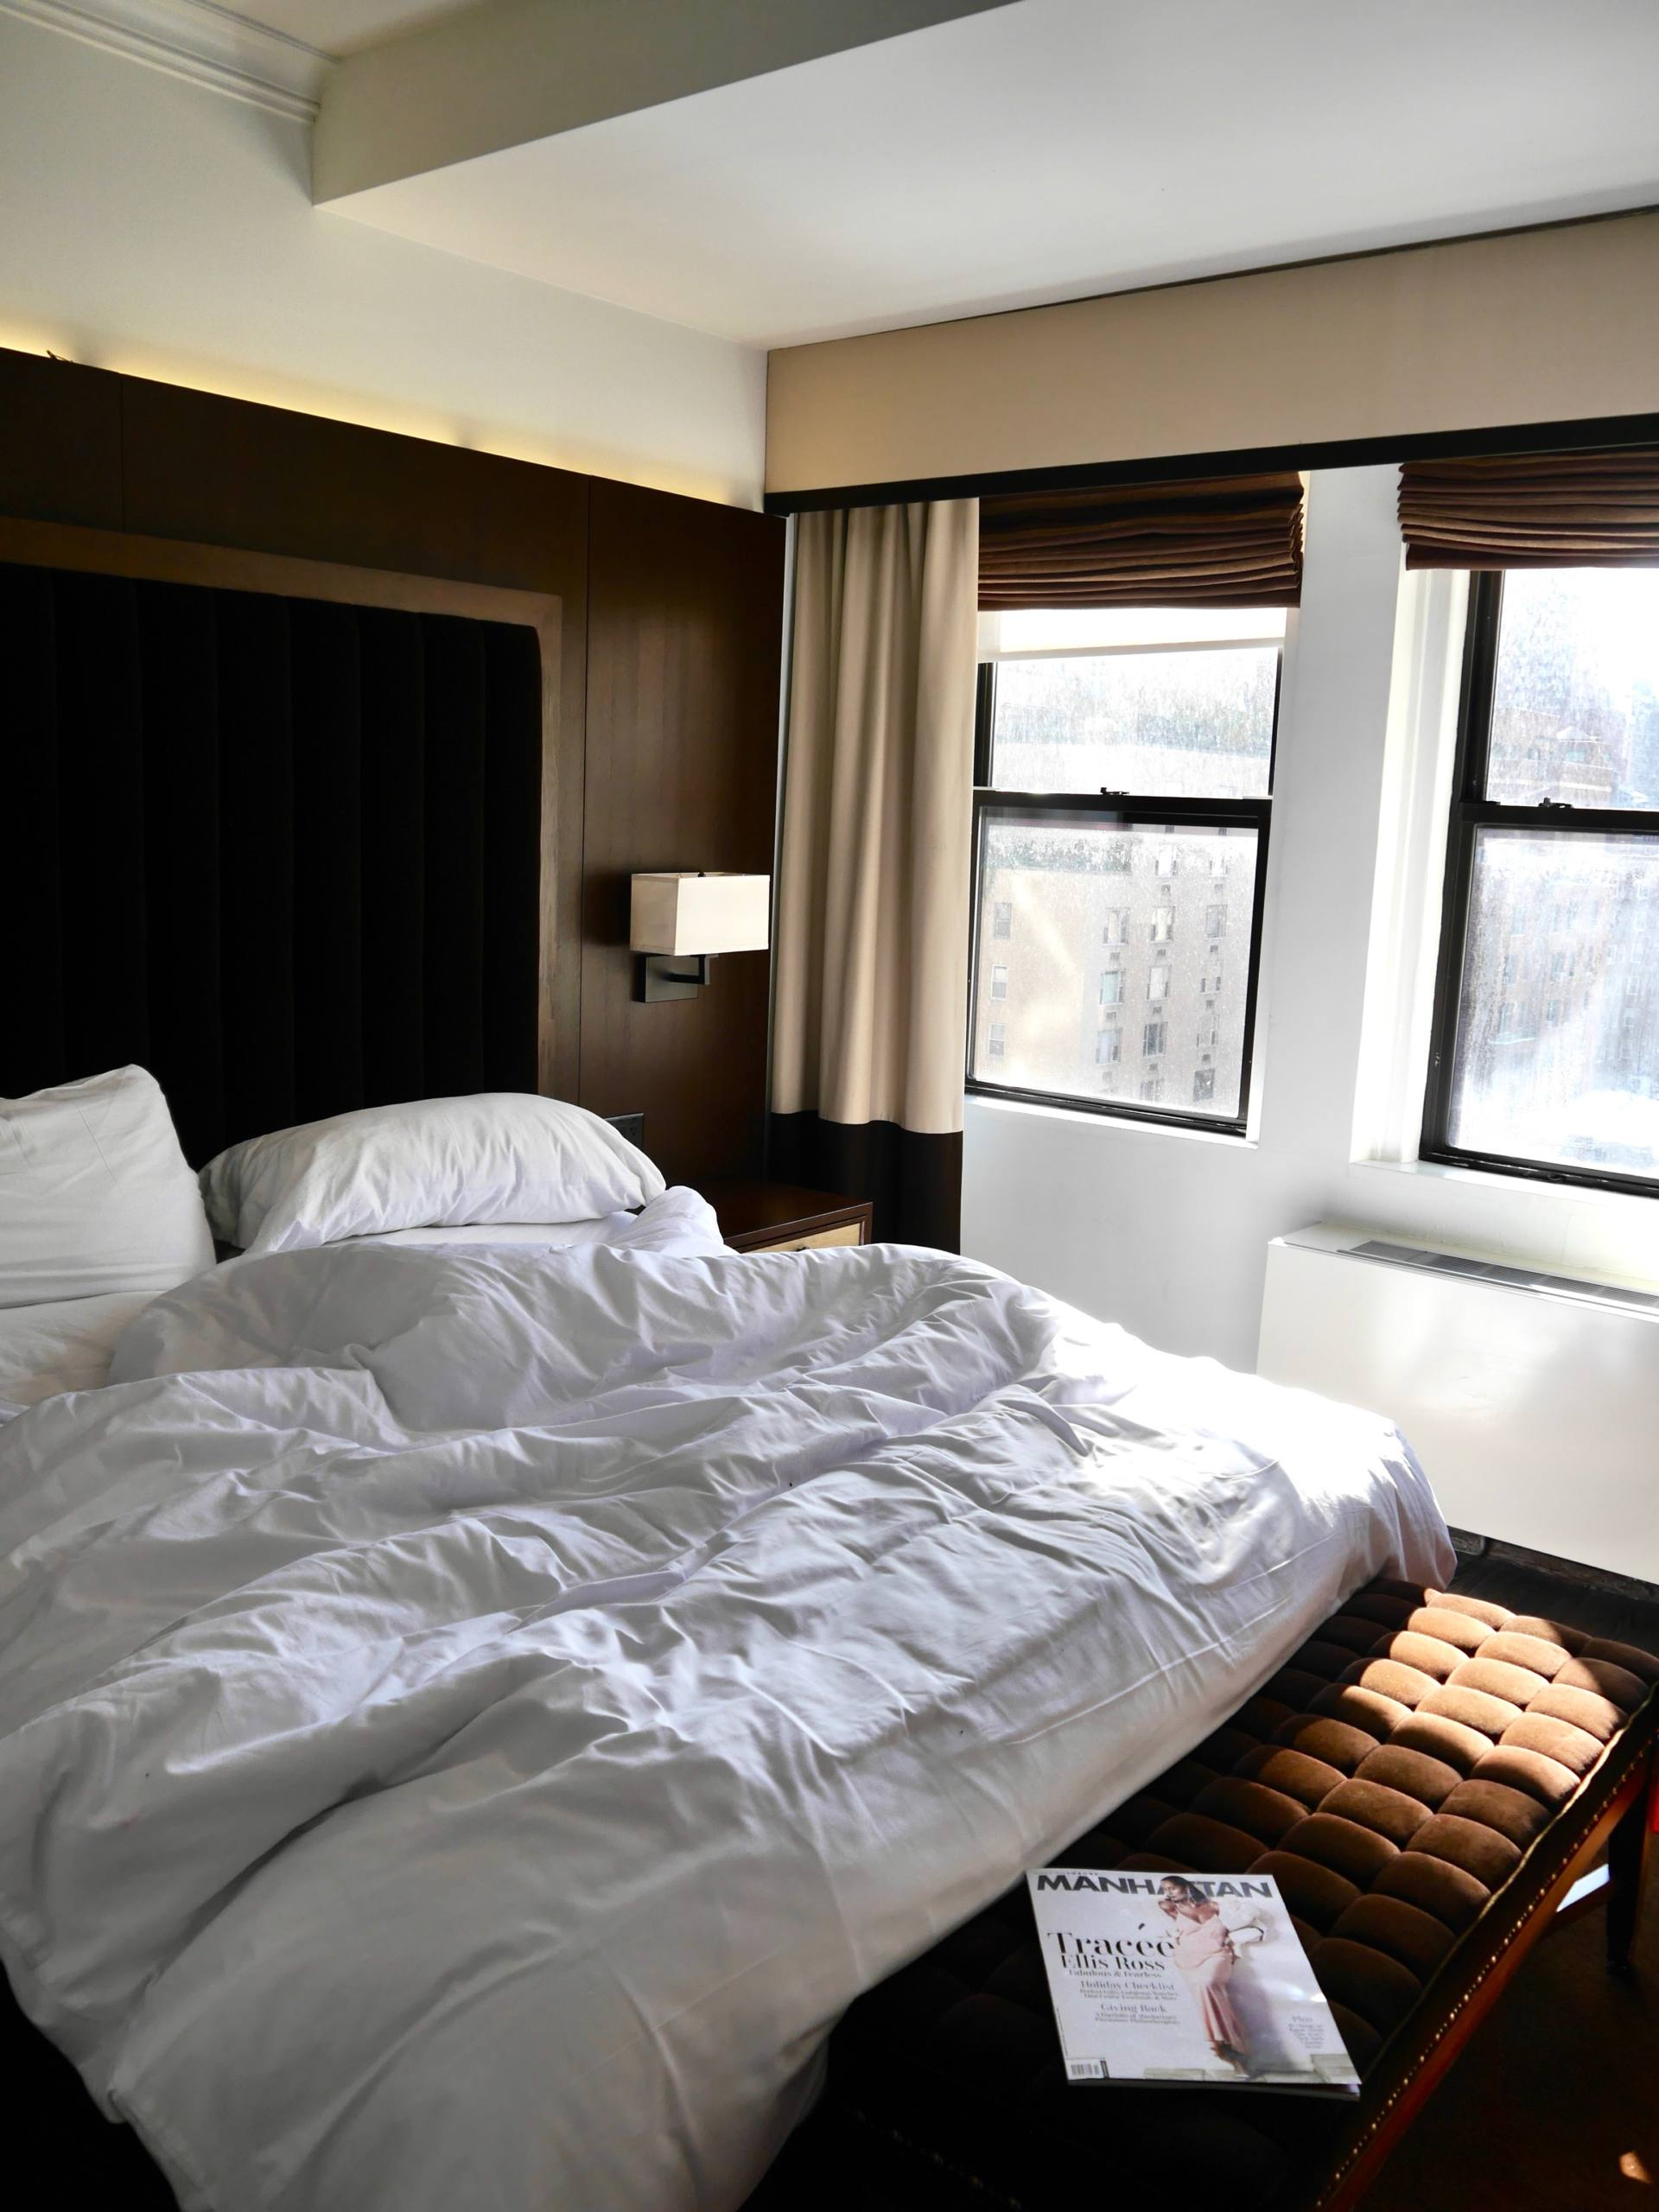 Cheap Hotels In New York Times Square Area